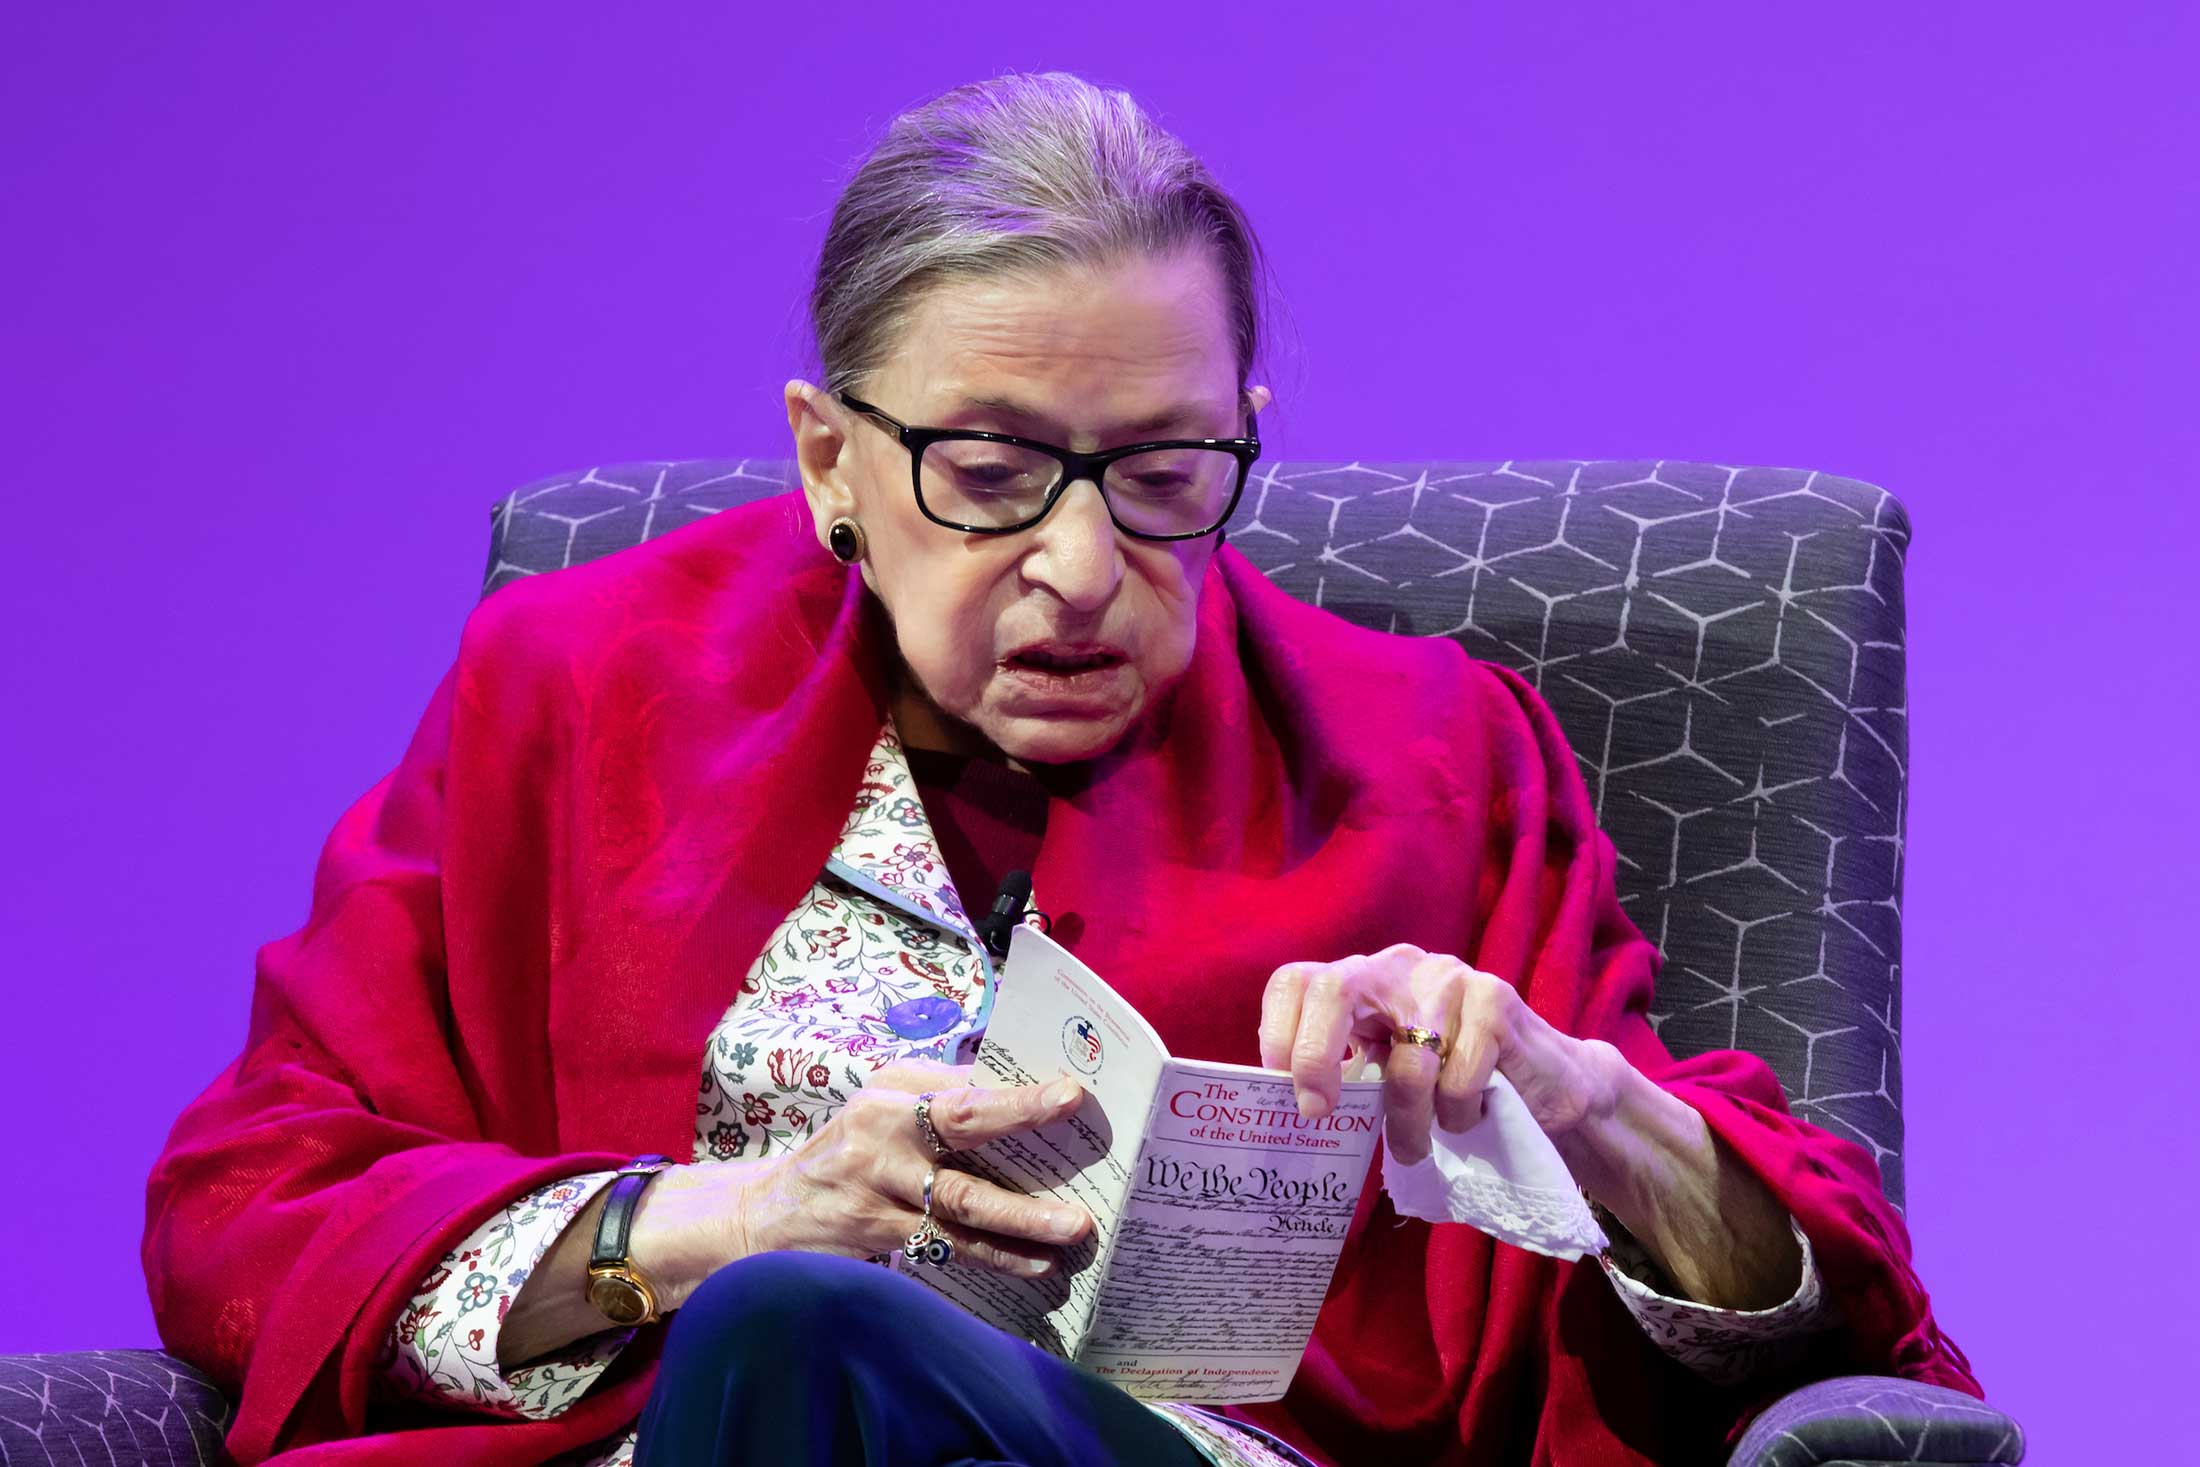 Justice Ginsburg reading from the Constitution